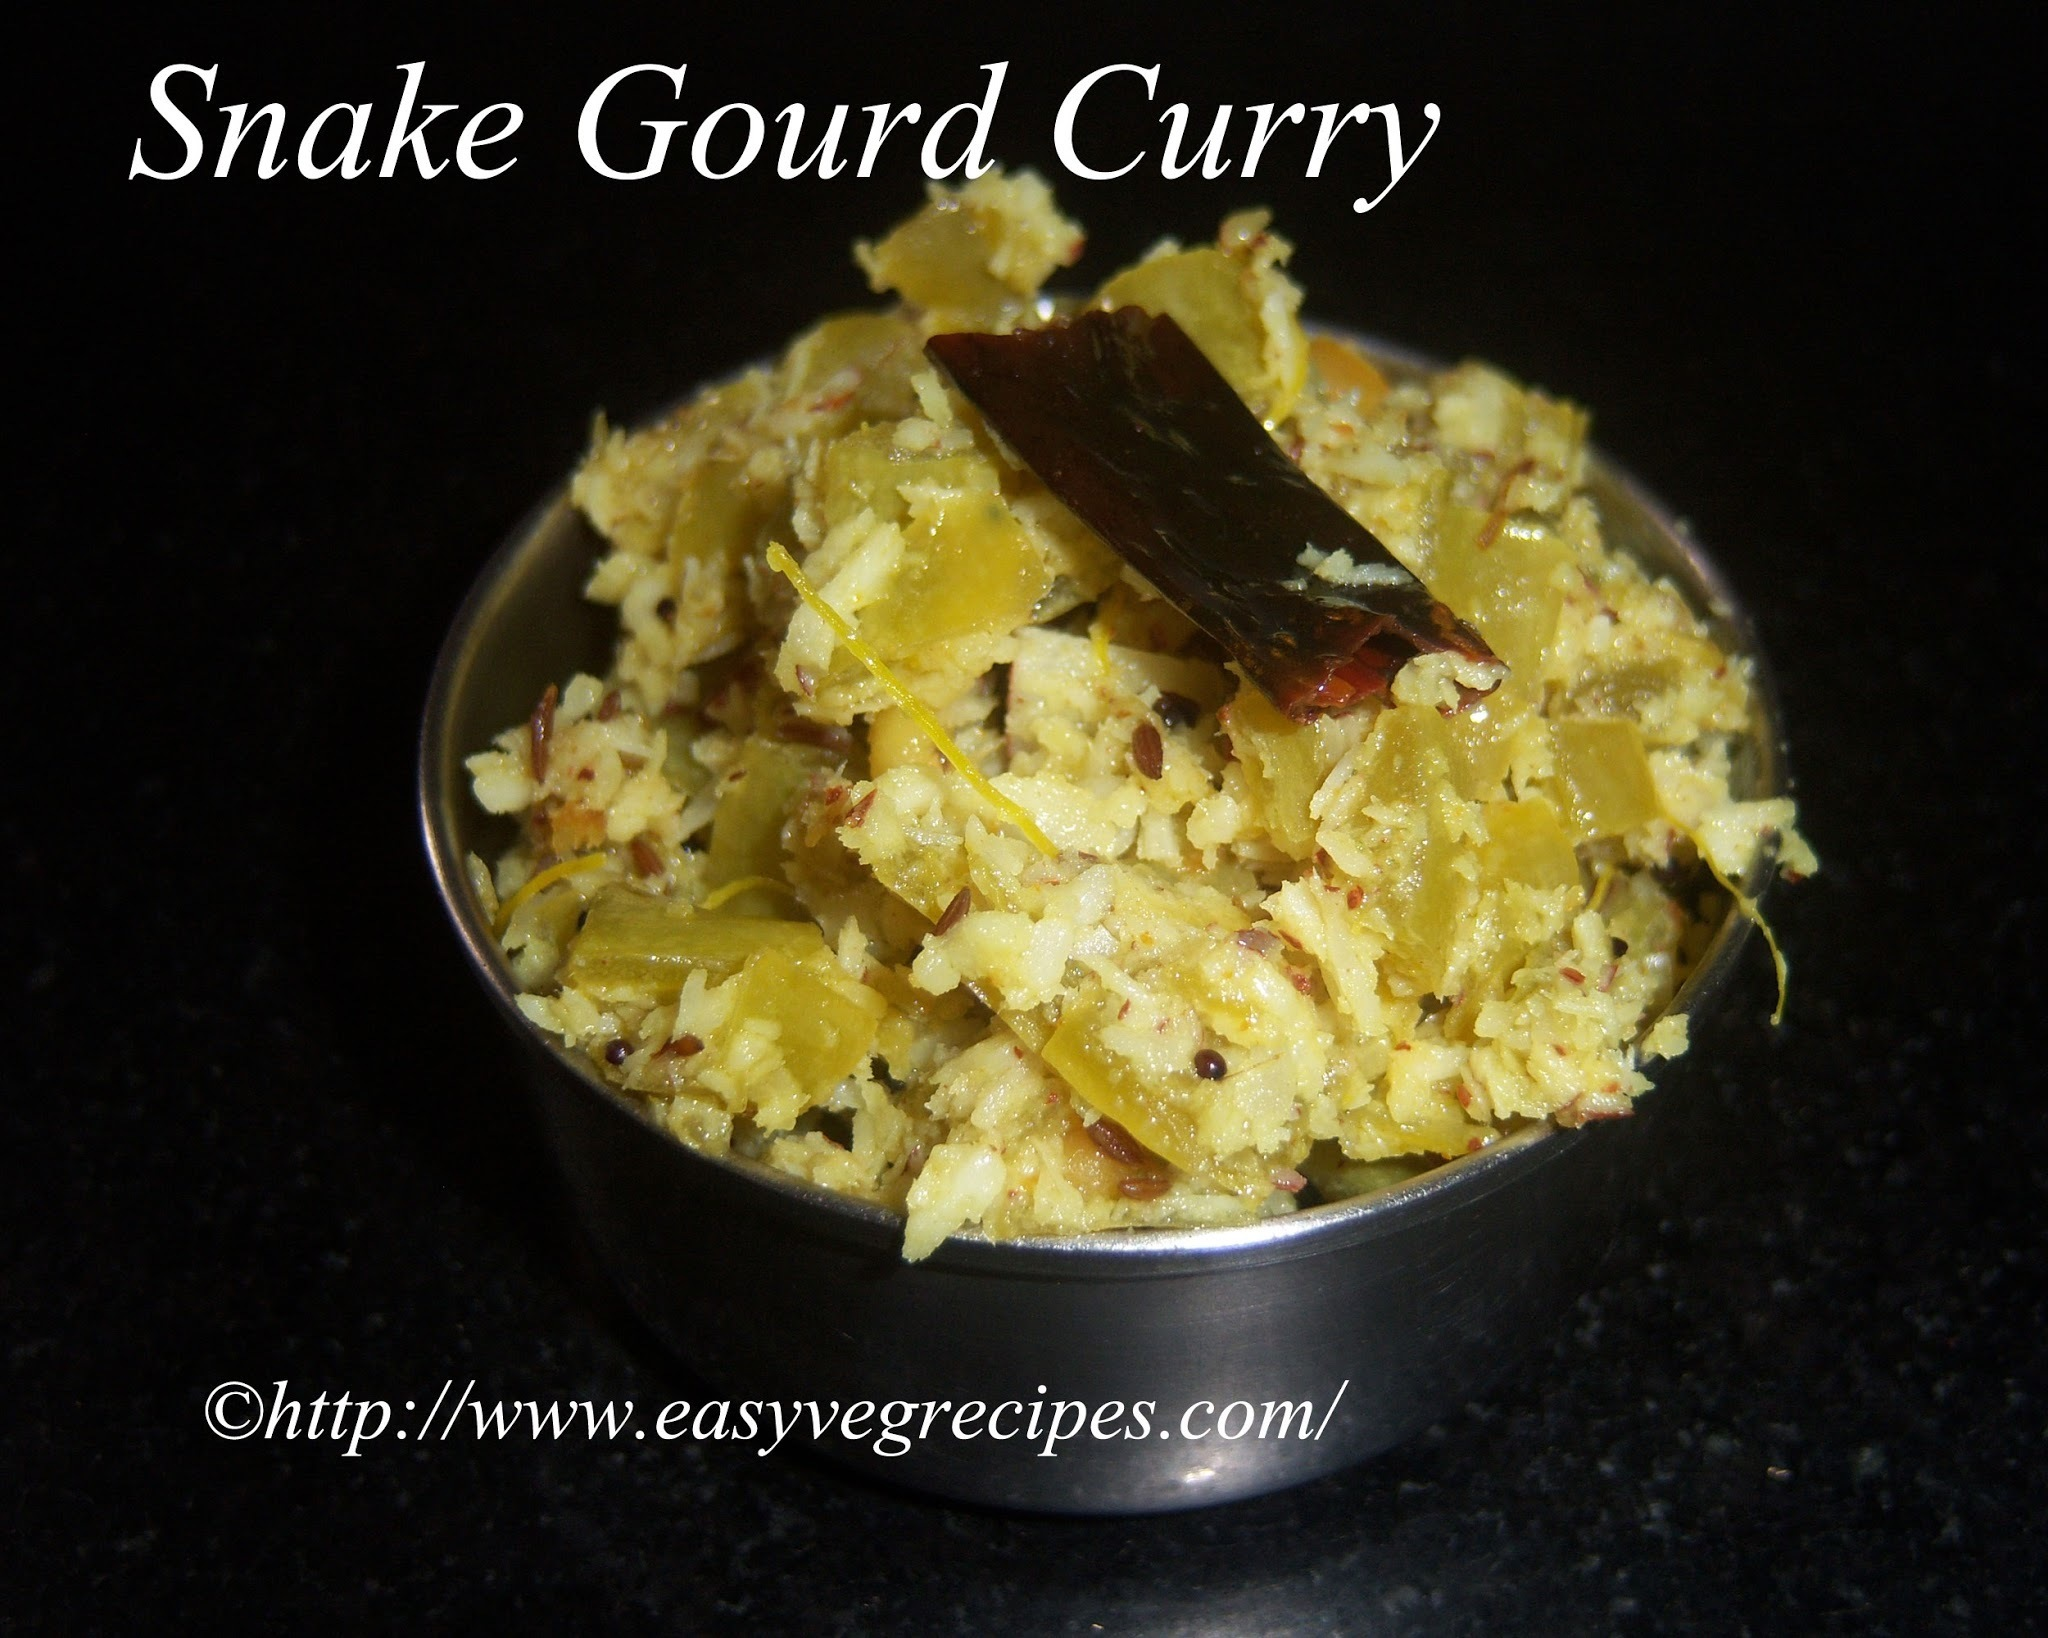 Snake Gourd Curry Recipe -- How to make Snake Gourd Curry